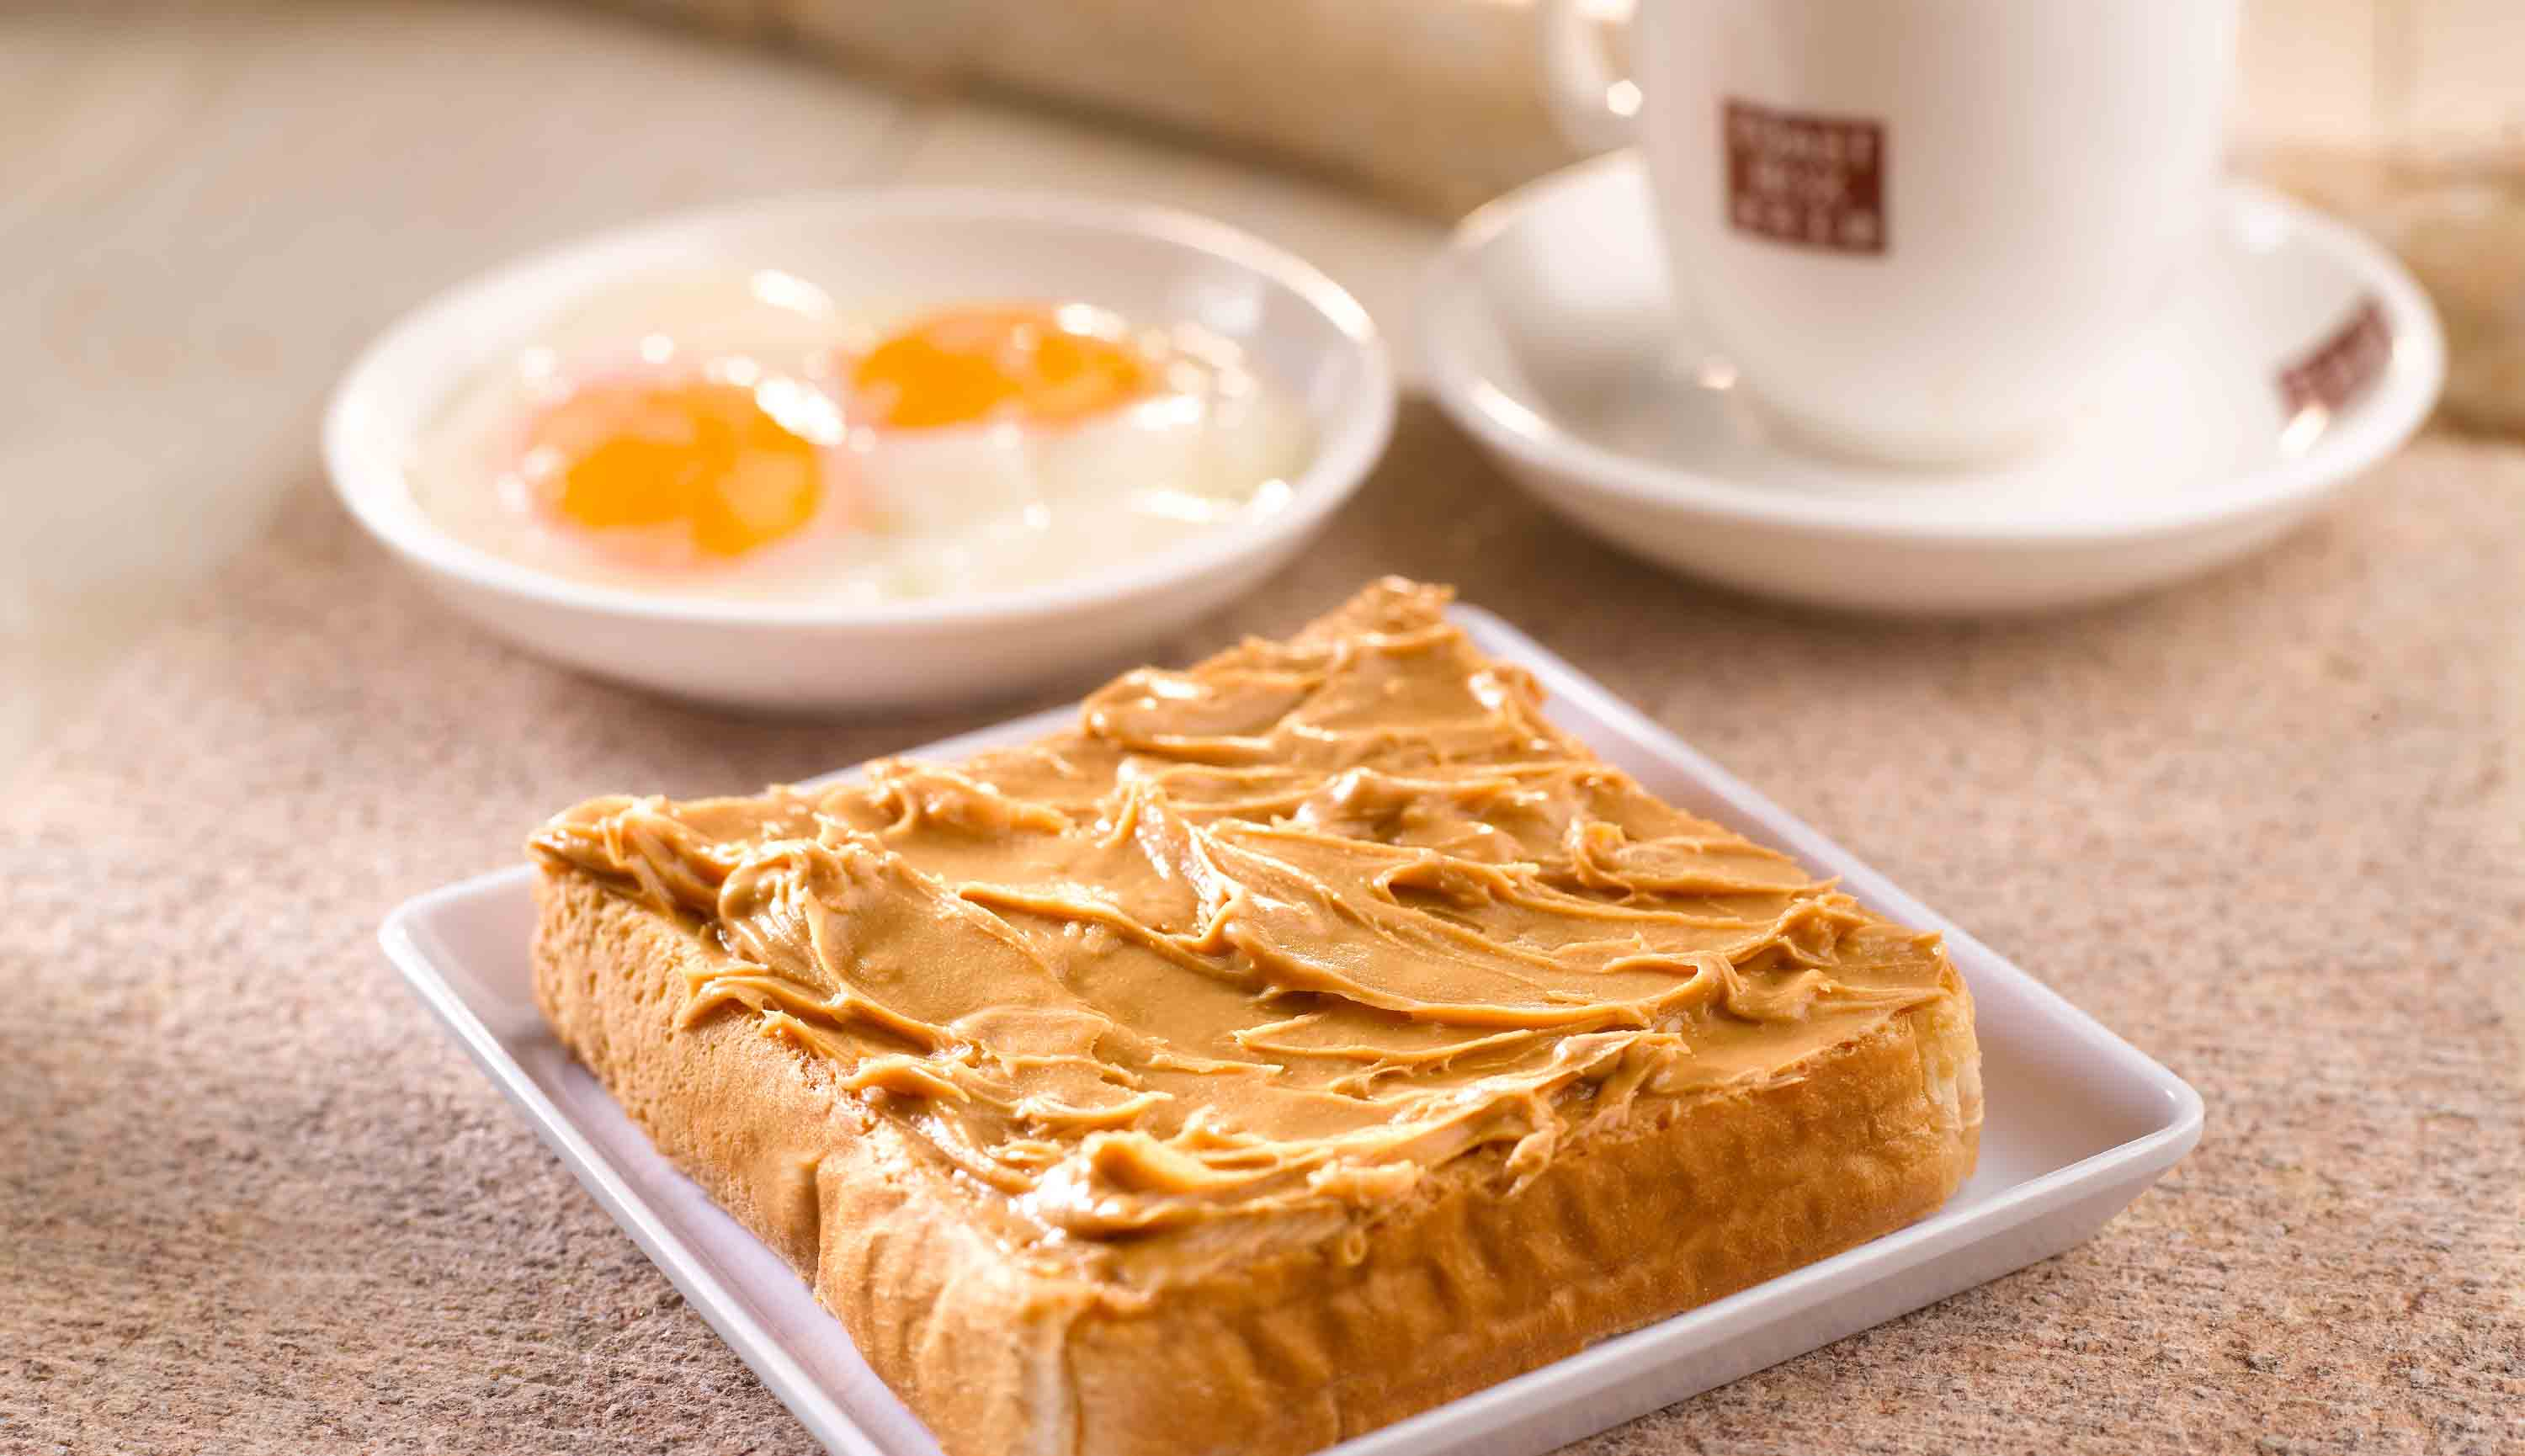 Toast Box - Peanut Butter Toast